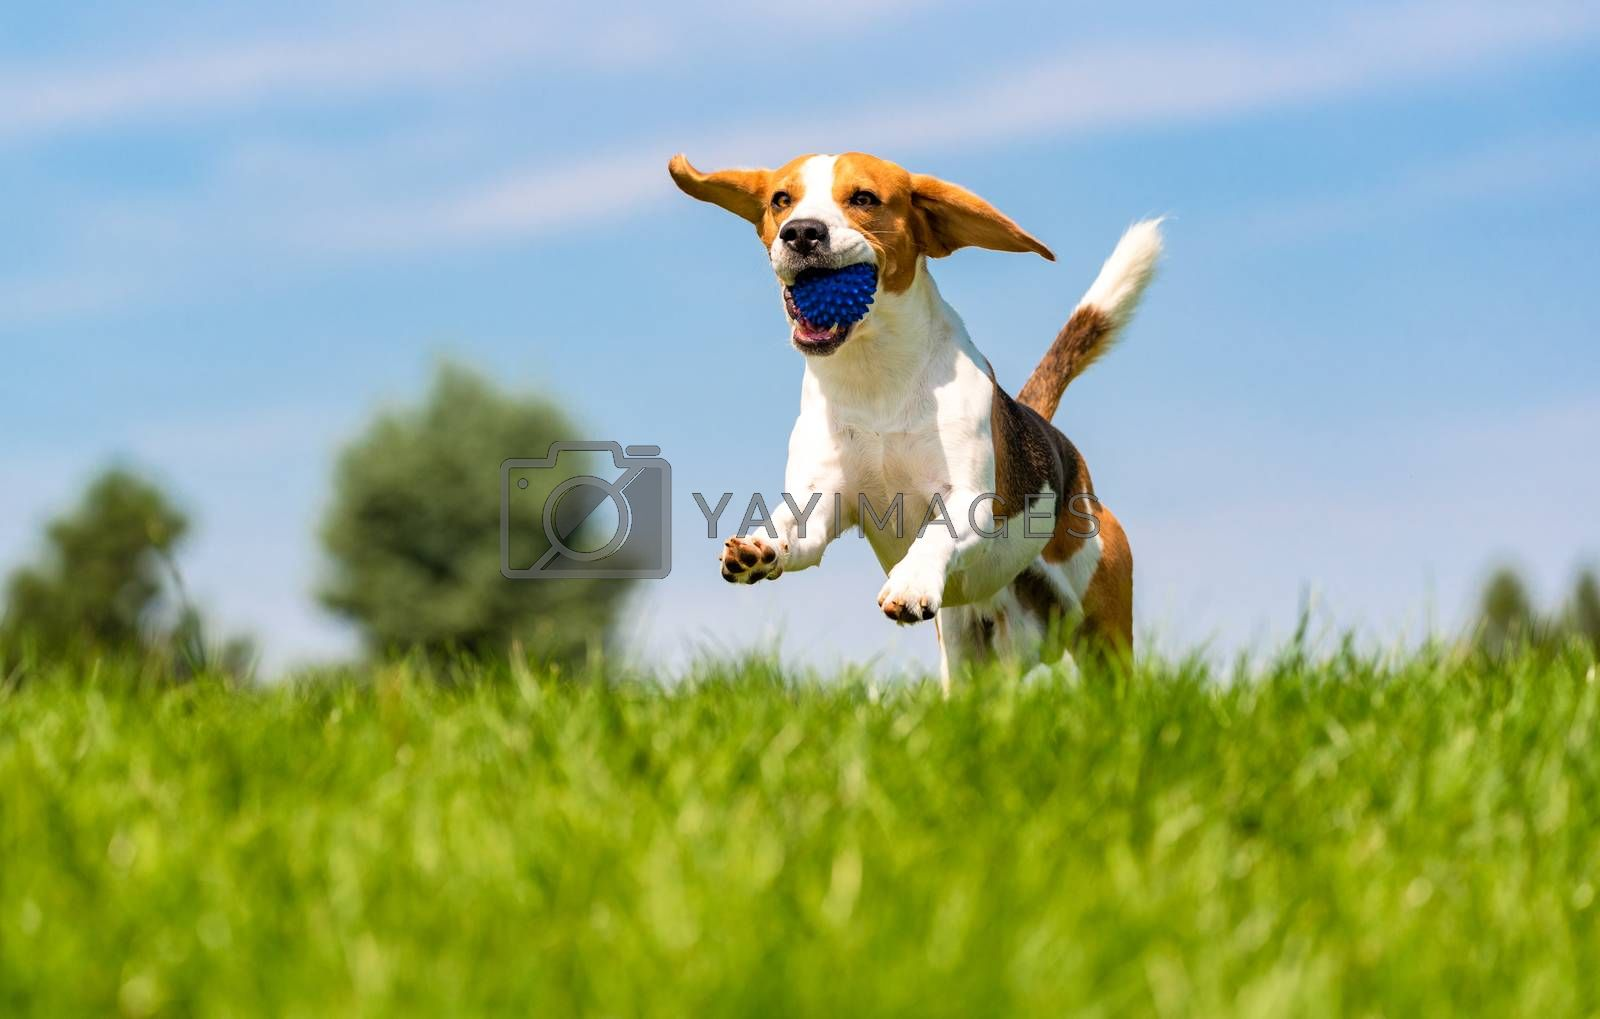 Beagle dog fun in garden outdoors run and jump with ball towards camera. Dog background, copy space